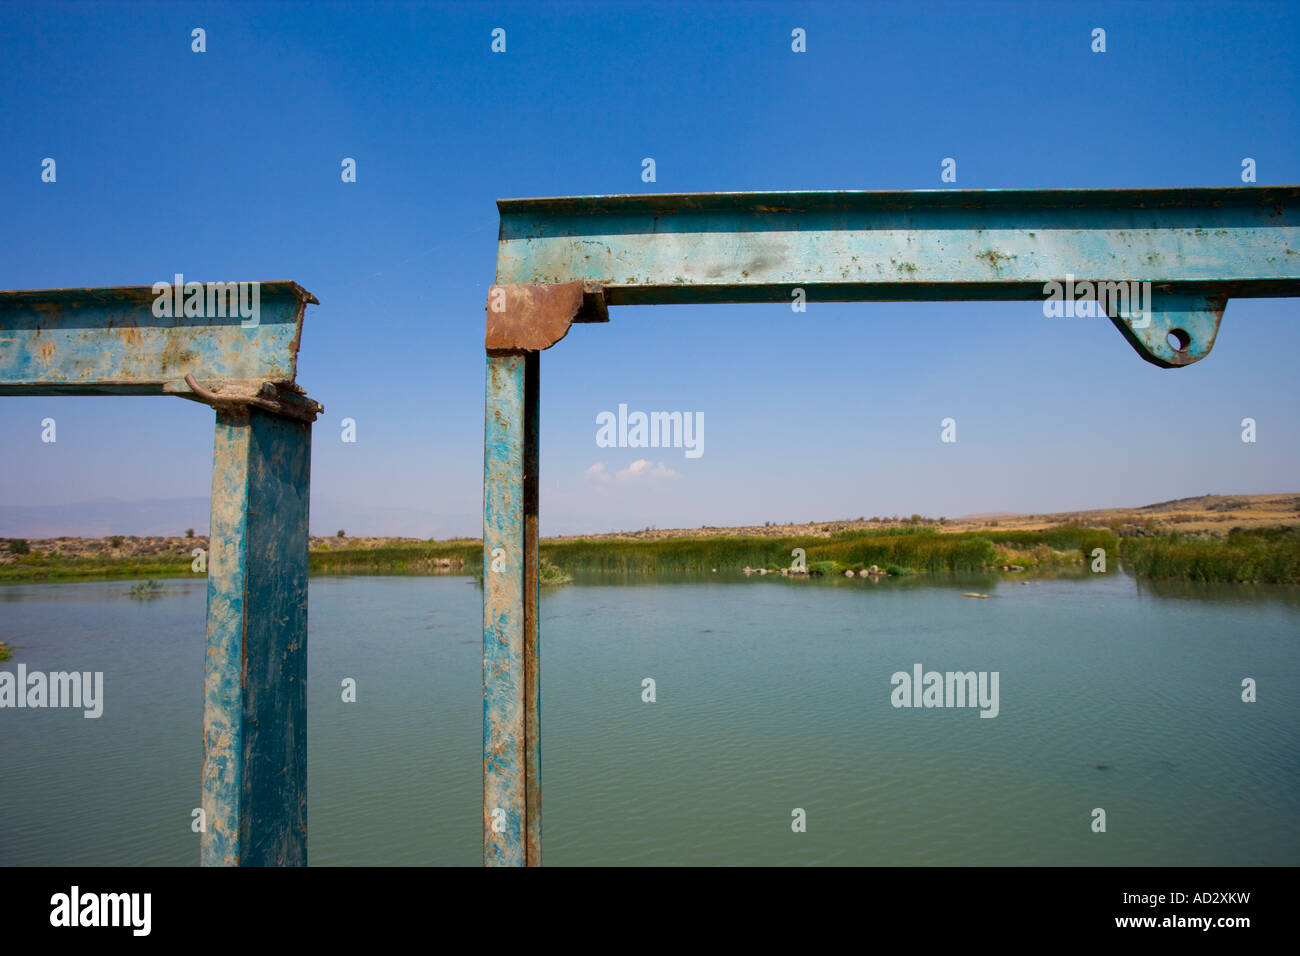 Gate posts to a reservoir lake - Stock Image